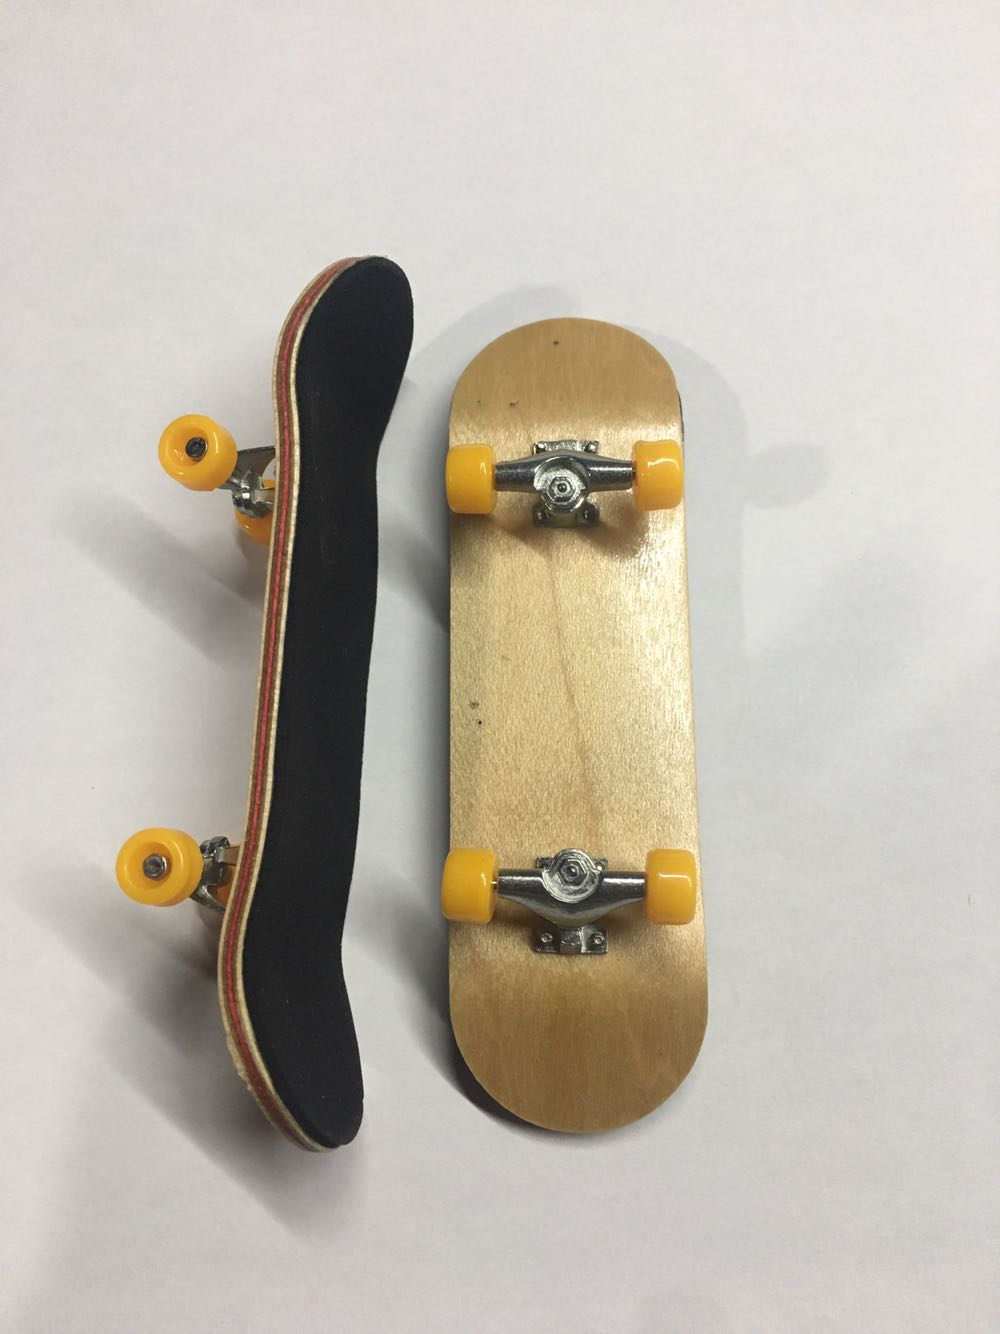 Complete Wooden Fingerboard Finger Skateboard Grit Box Foam Tape Maple Wood